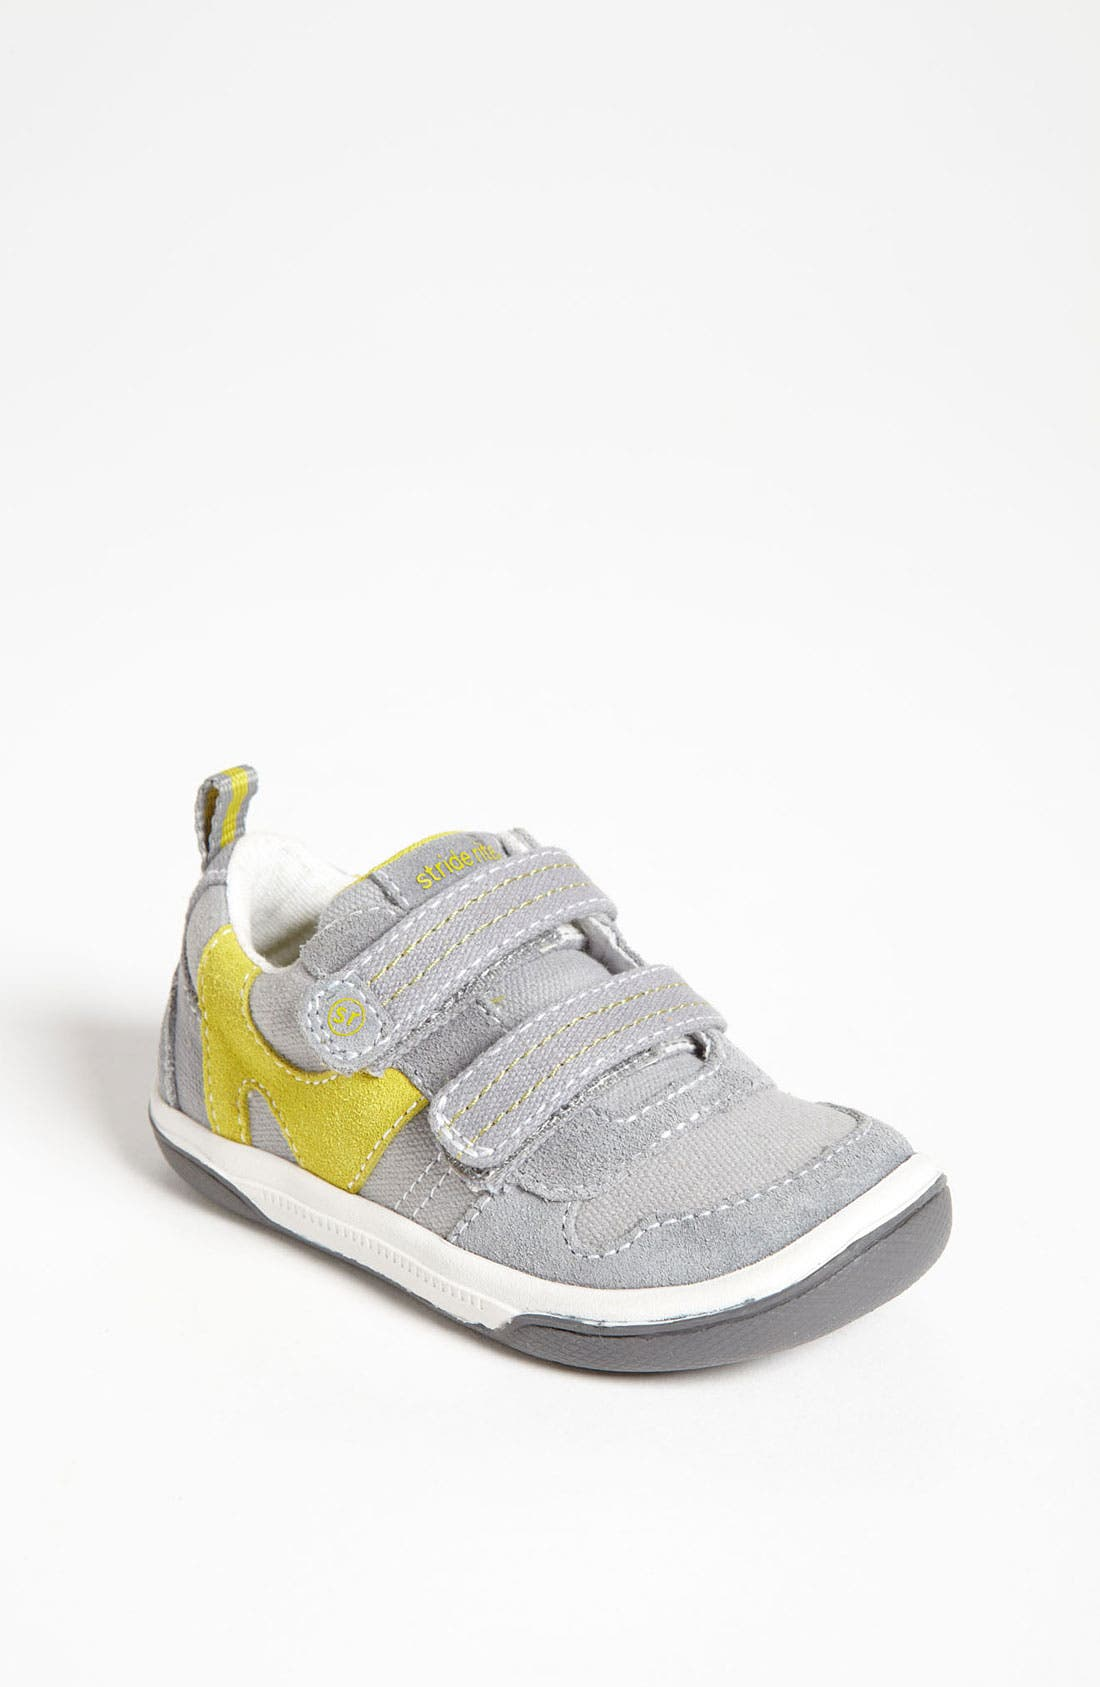 Alternate Image 1 Selected - Stride Rite 'Jamison' Sneaker (Baby, Walker & Toddler)